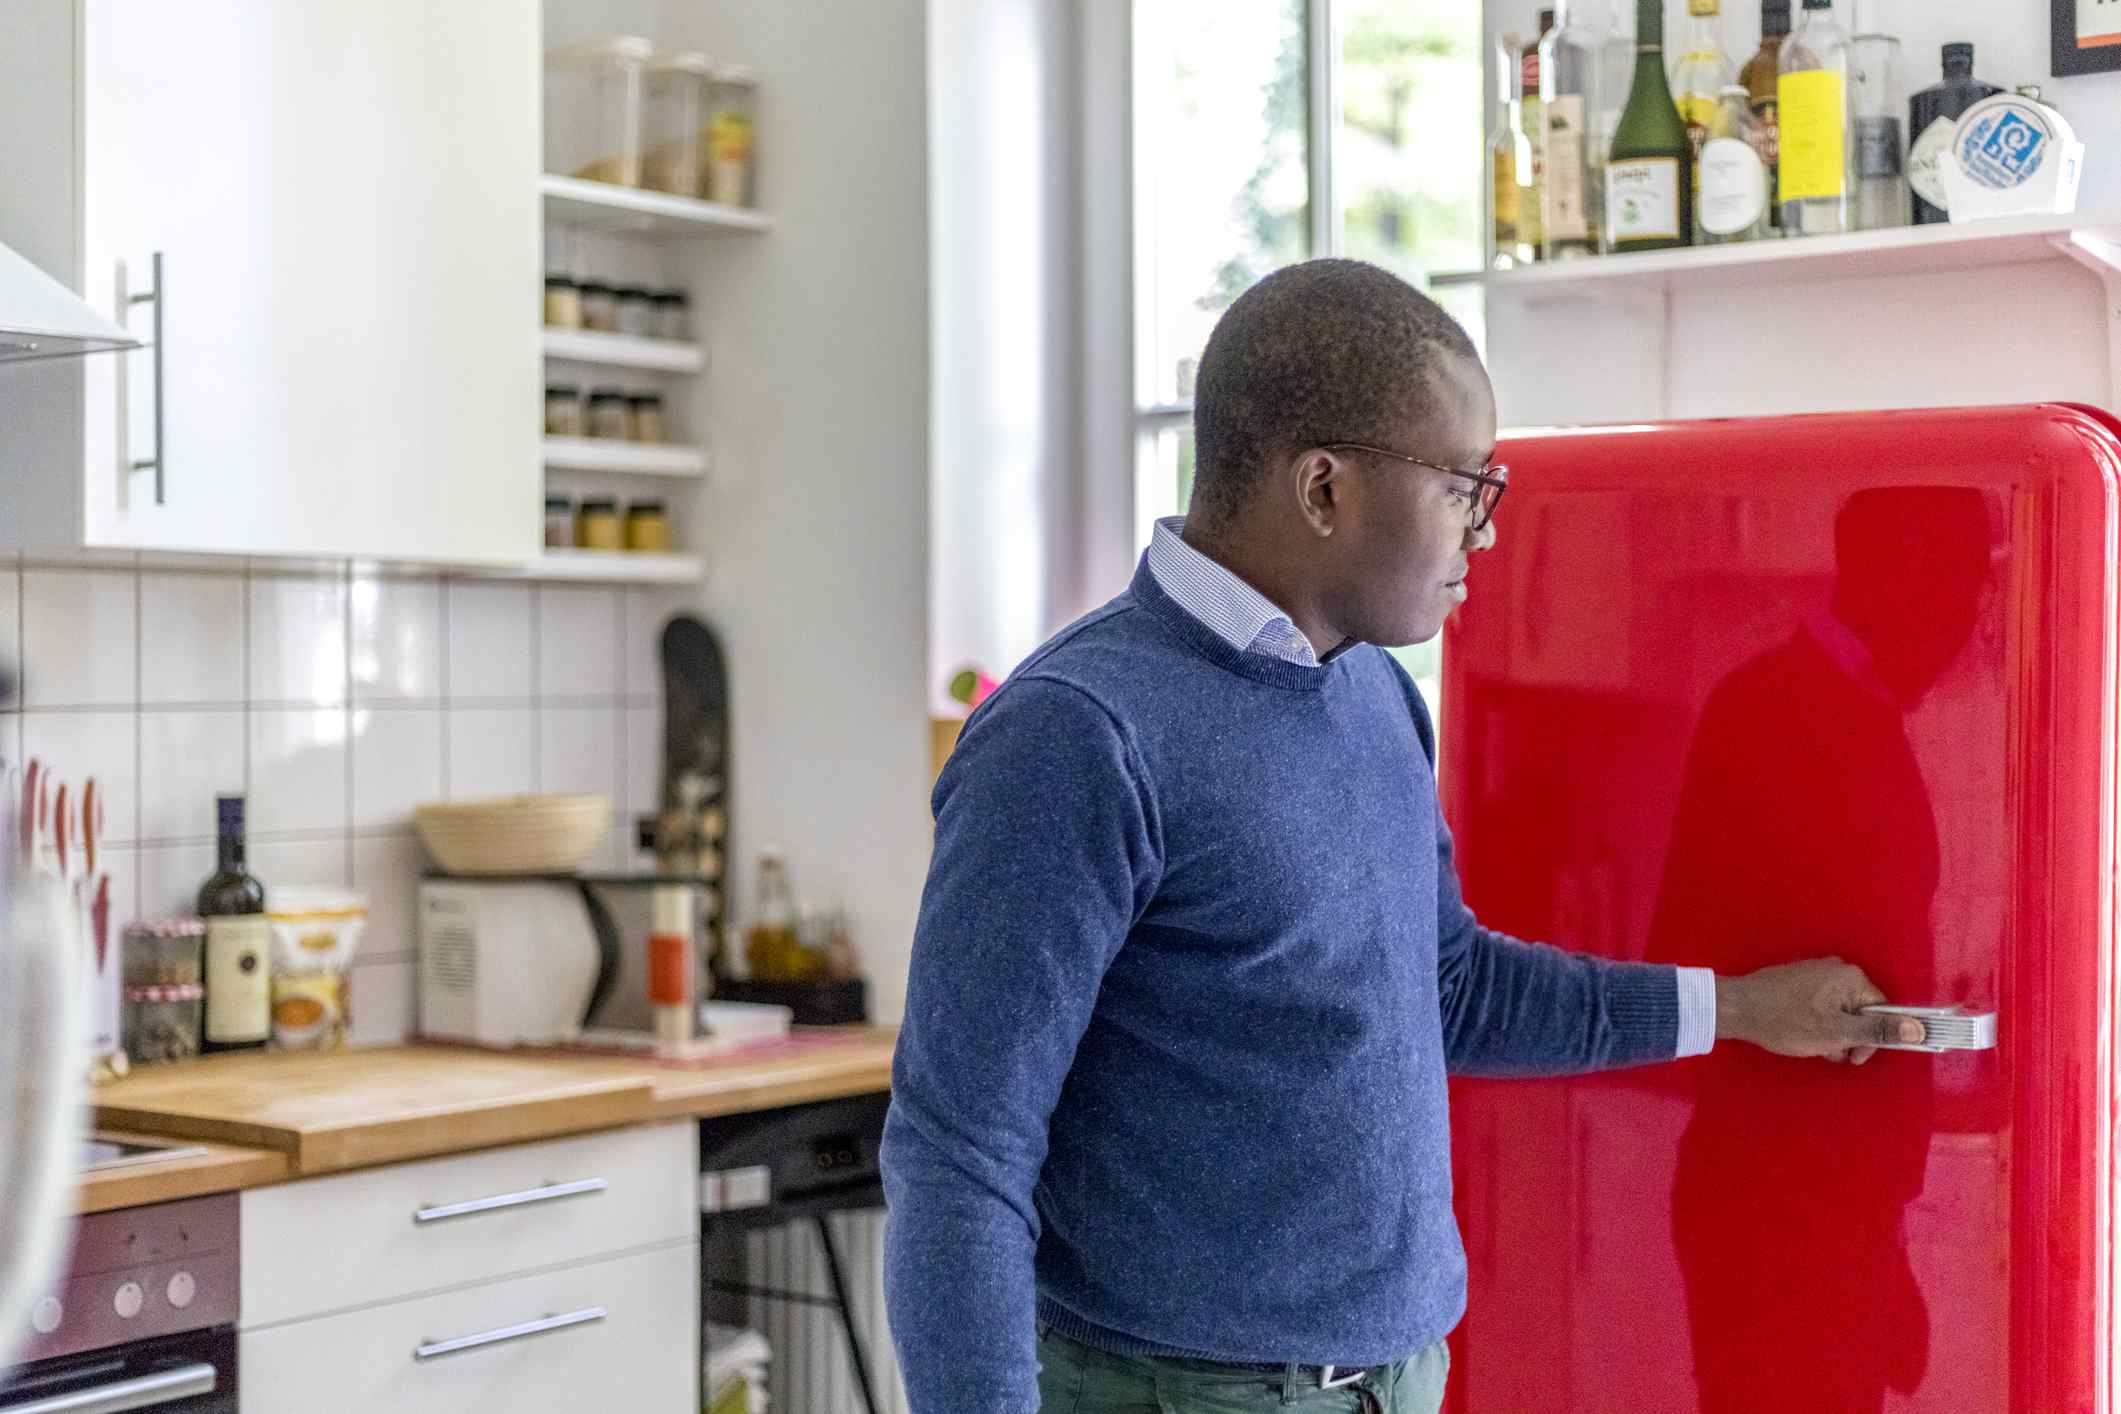 Man opening a red refrigerator.